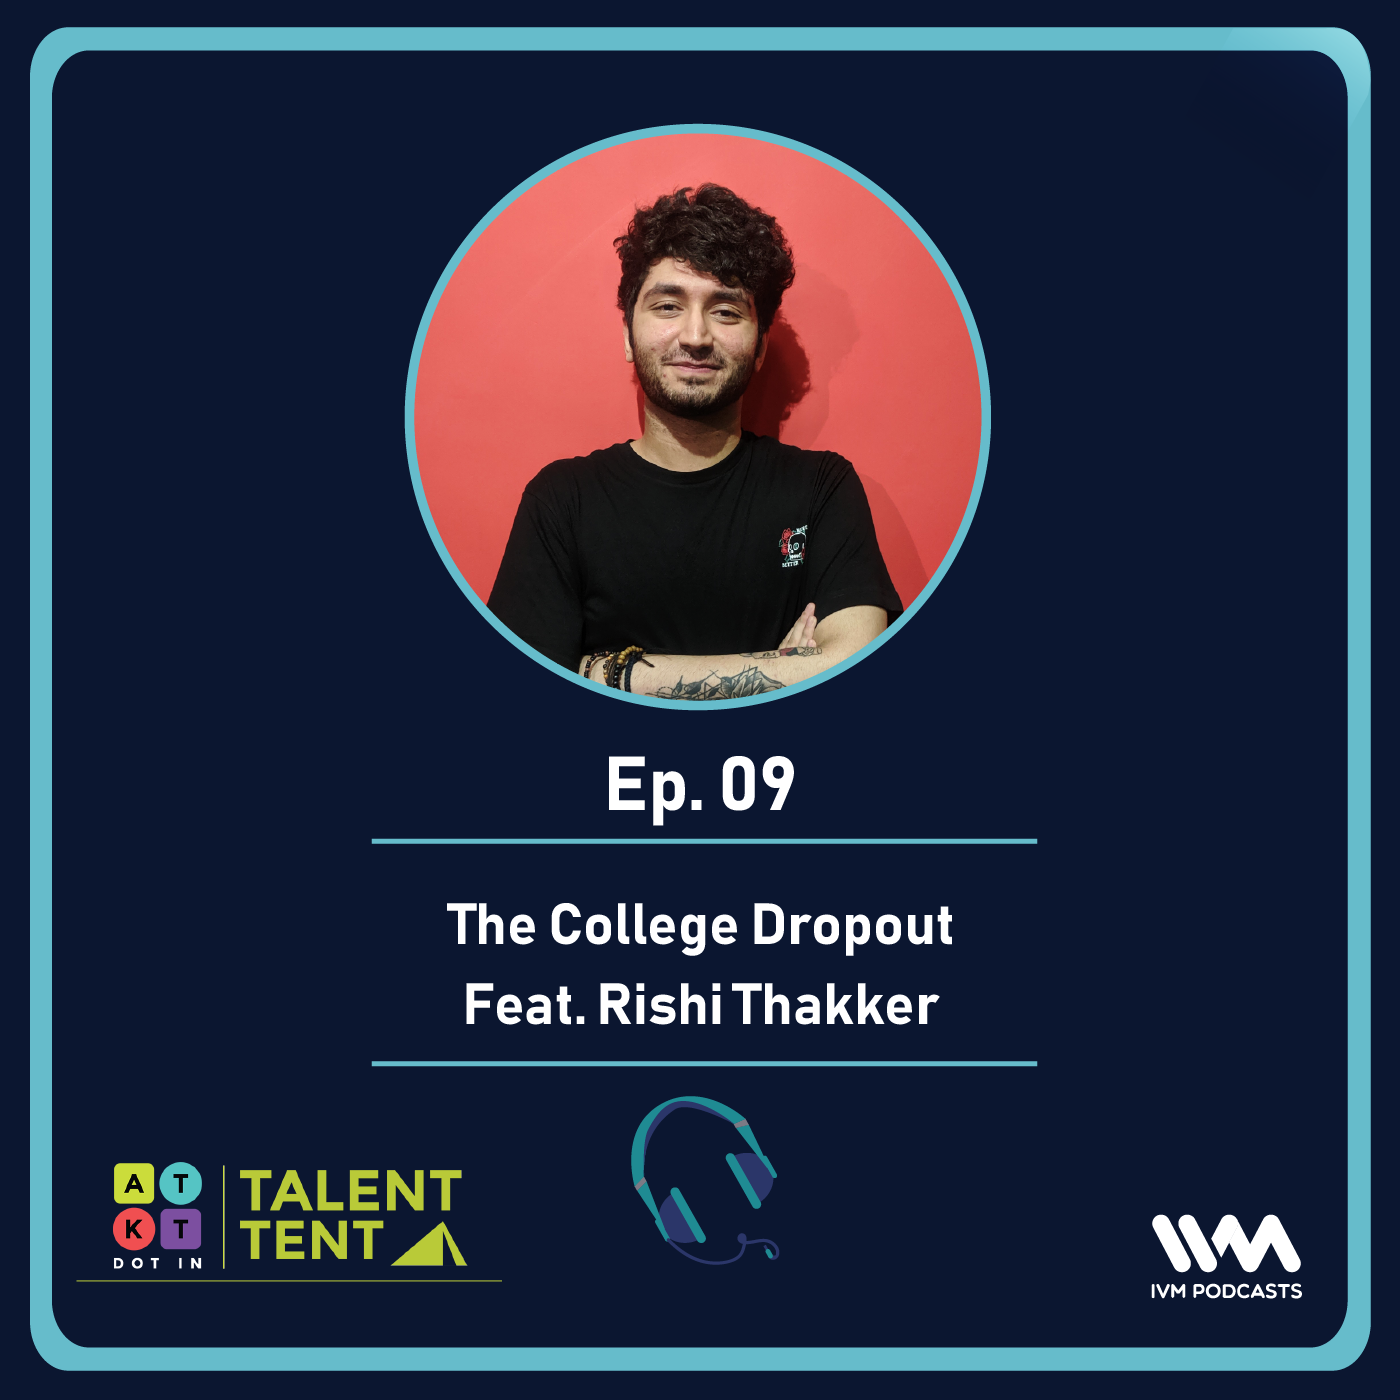 Ep. 09: The College Dropout